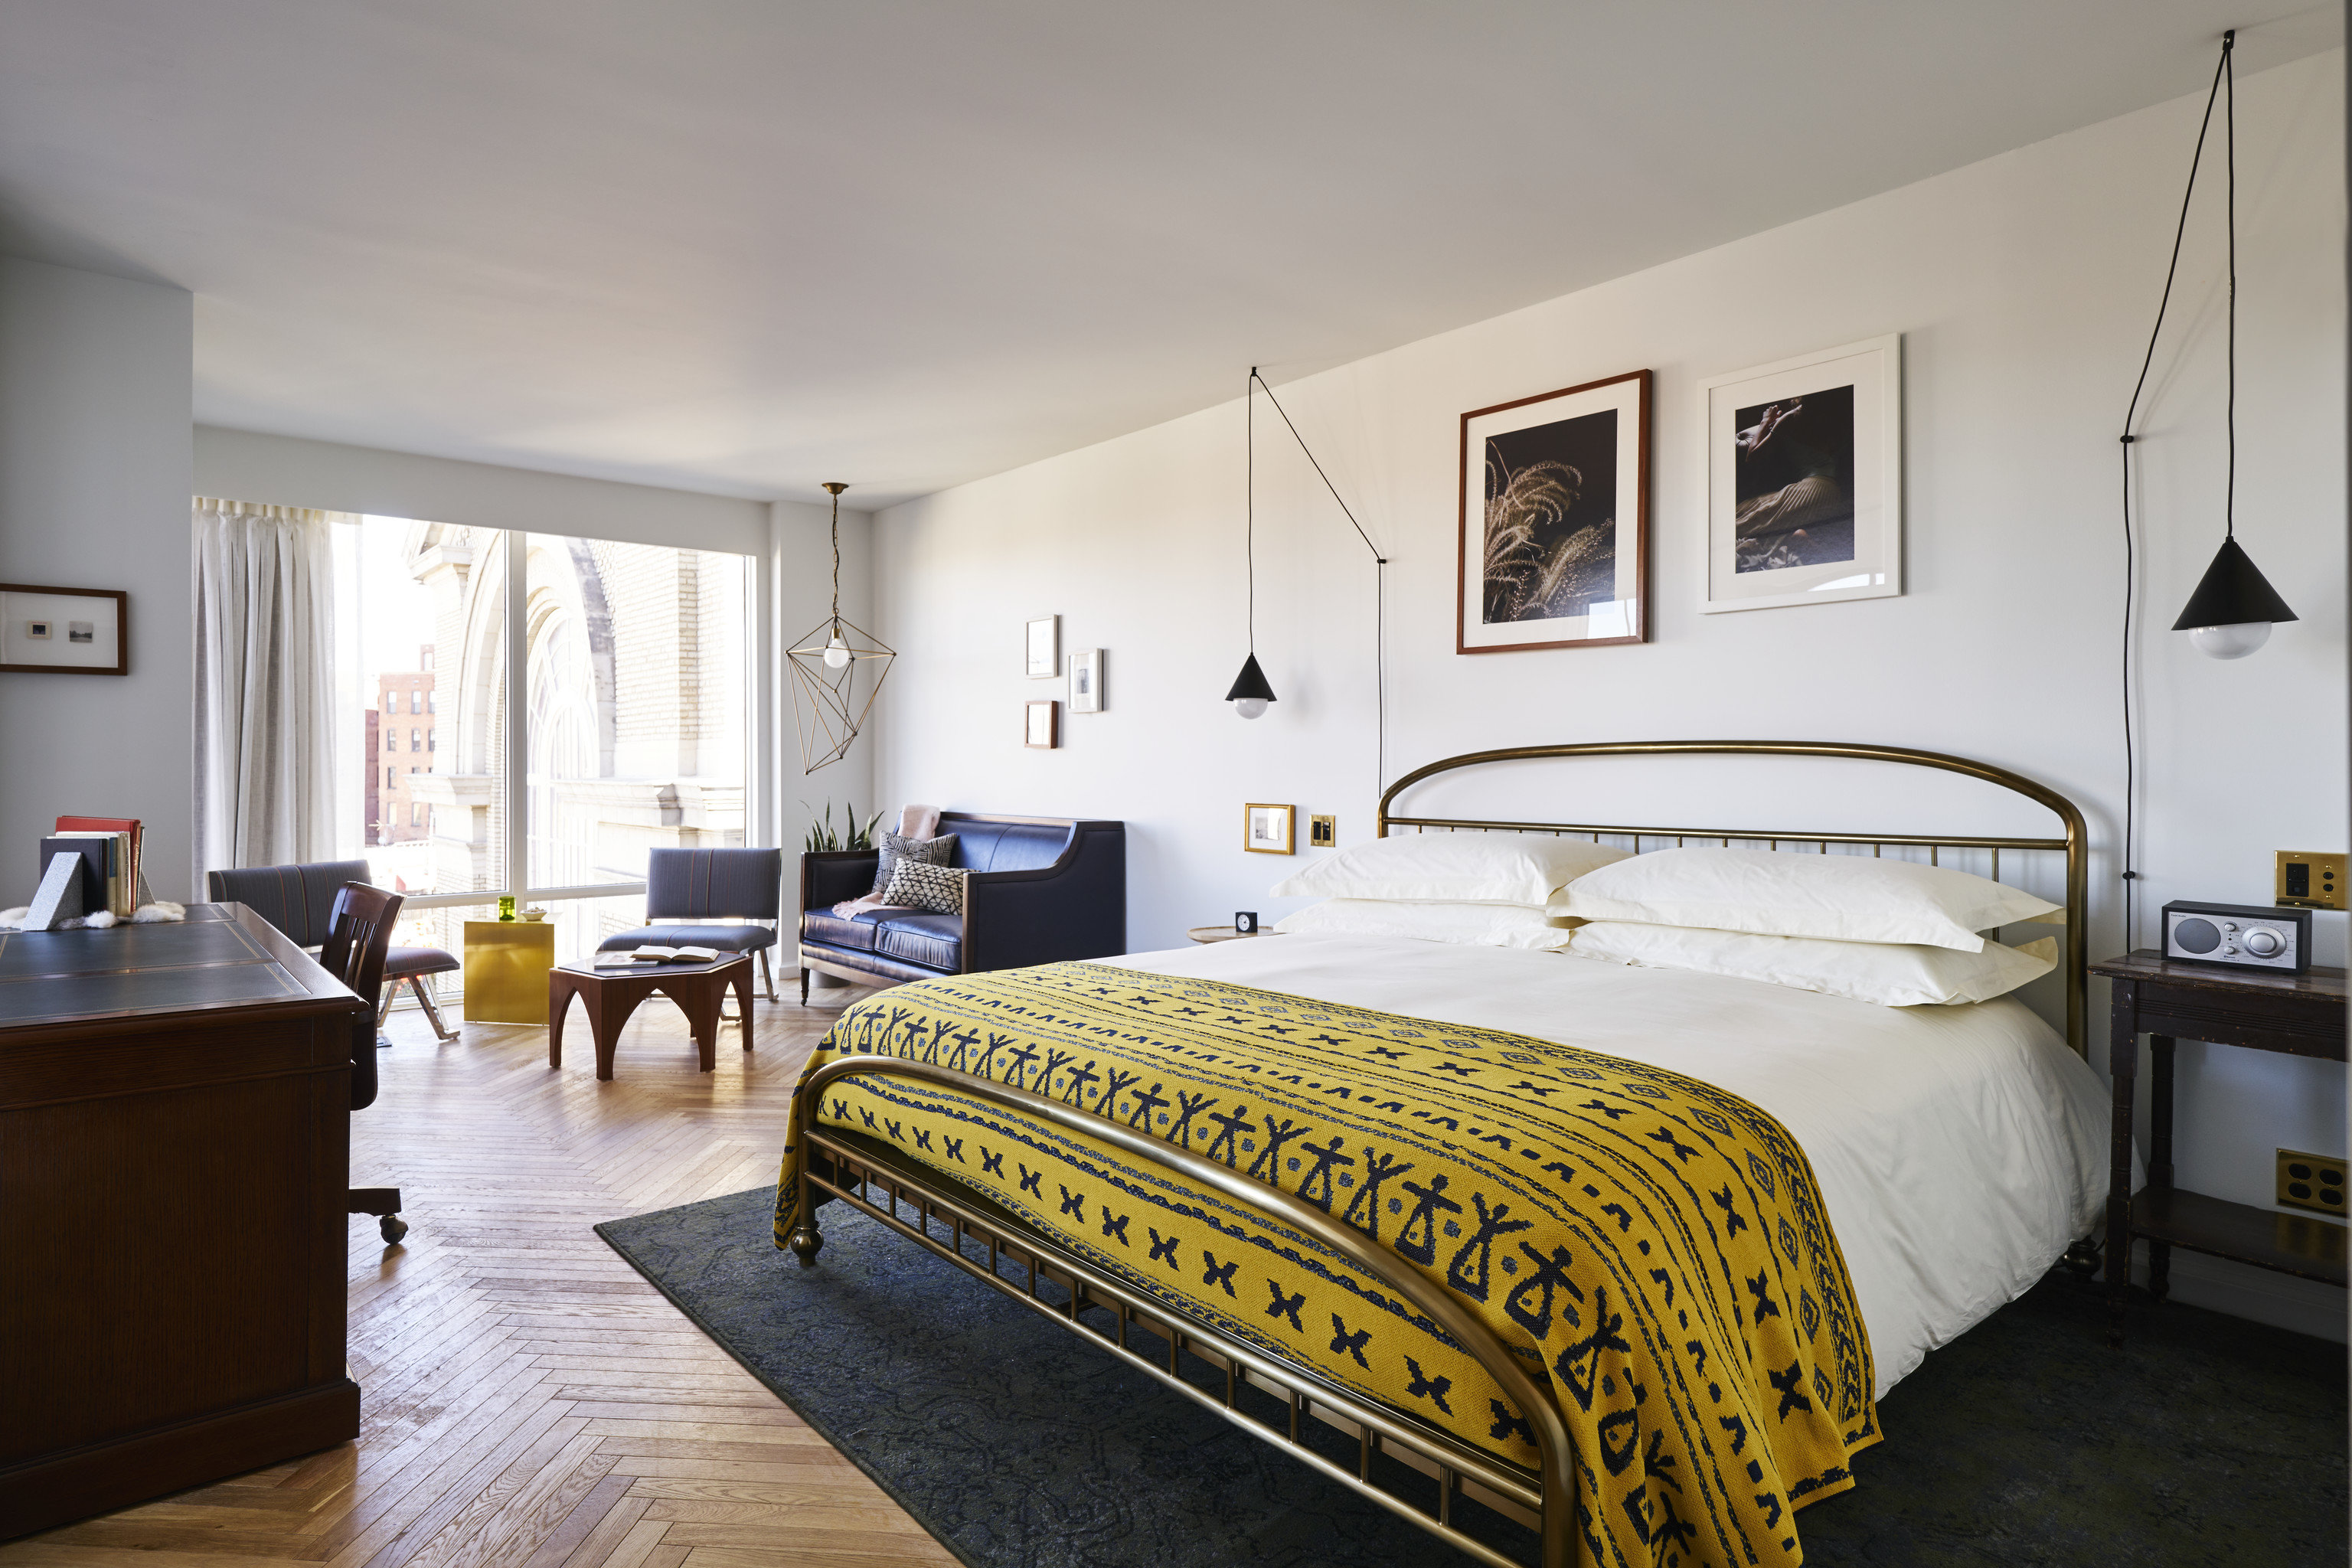 Home Design Ideas from One of Our Favorite Hotels